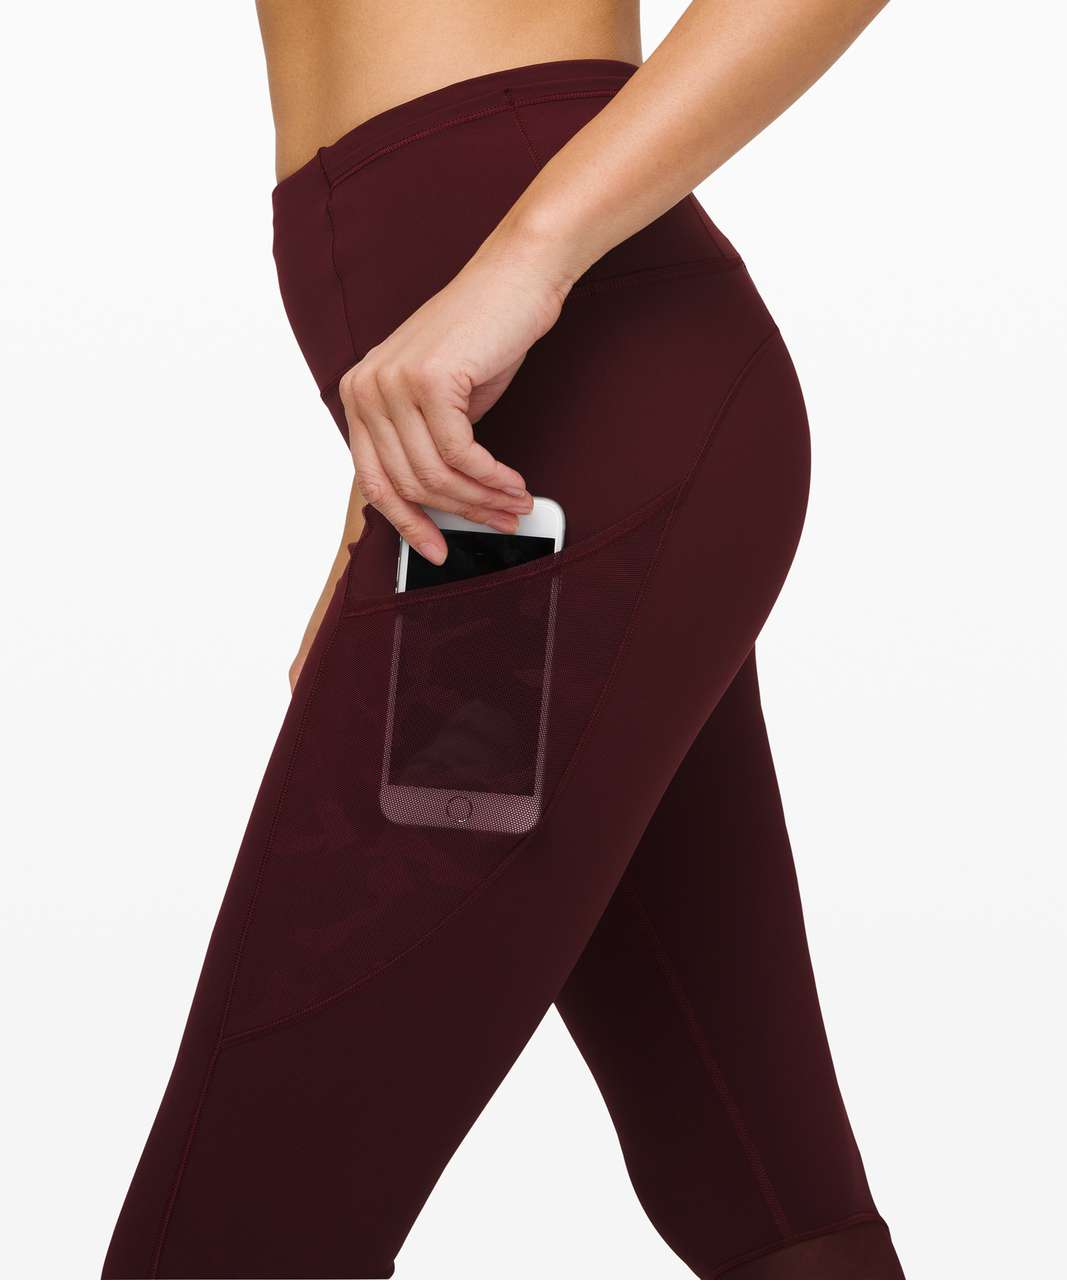 "Lululemon Fast and Free Crop 23"" *Mesh - Garnet / Incognito Camo Emboss Rotated Garnet"